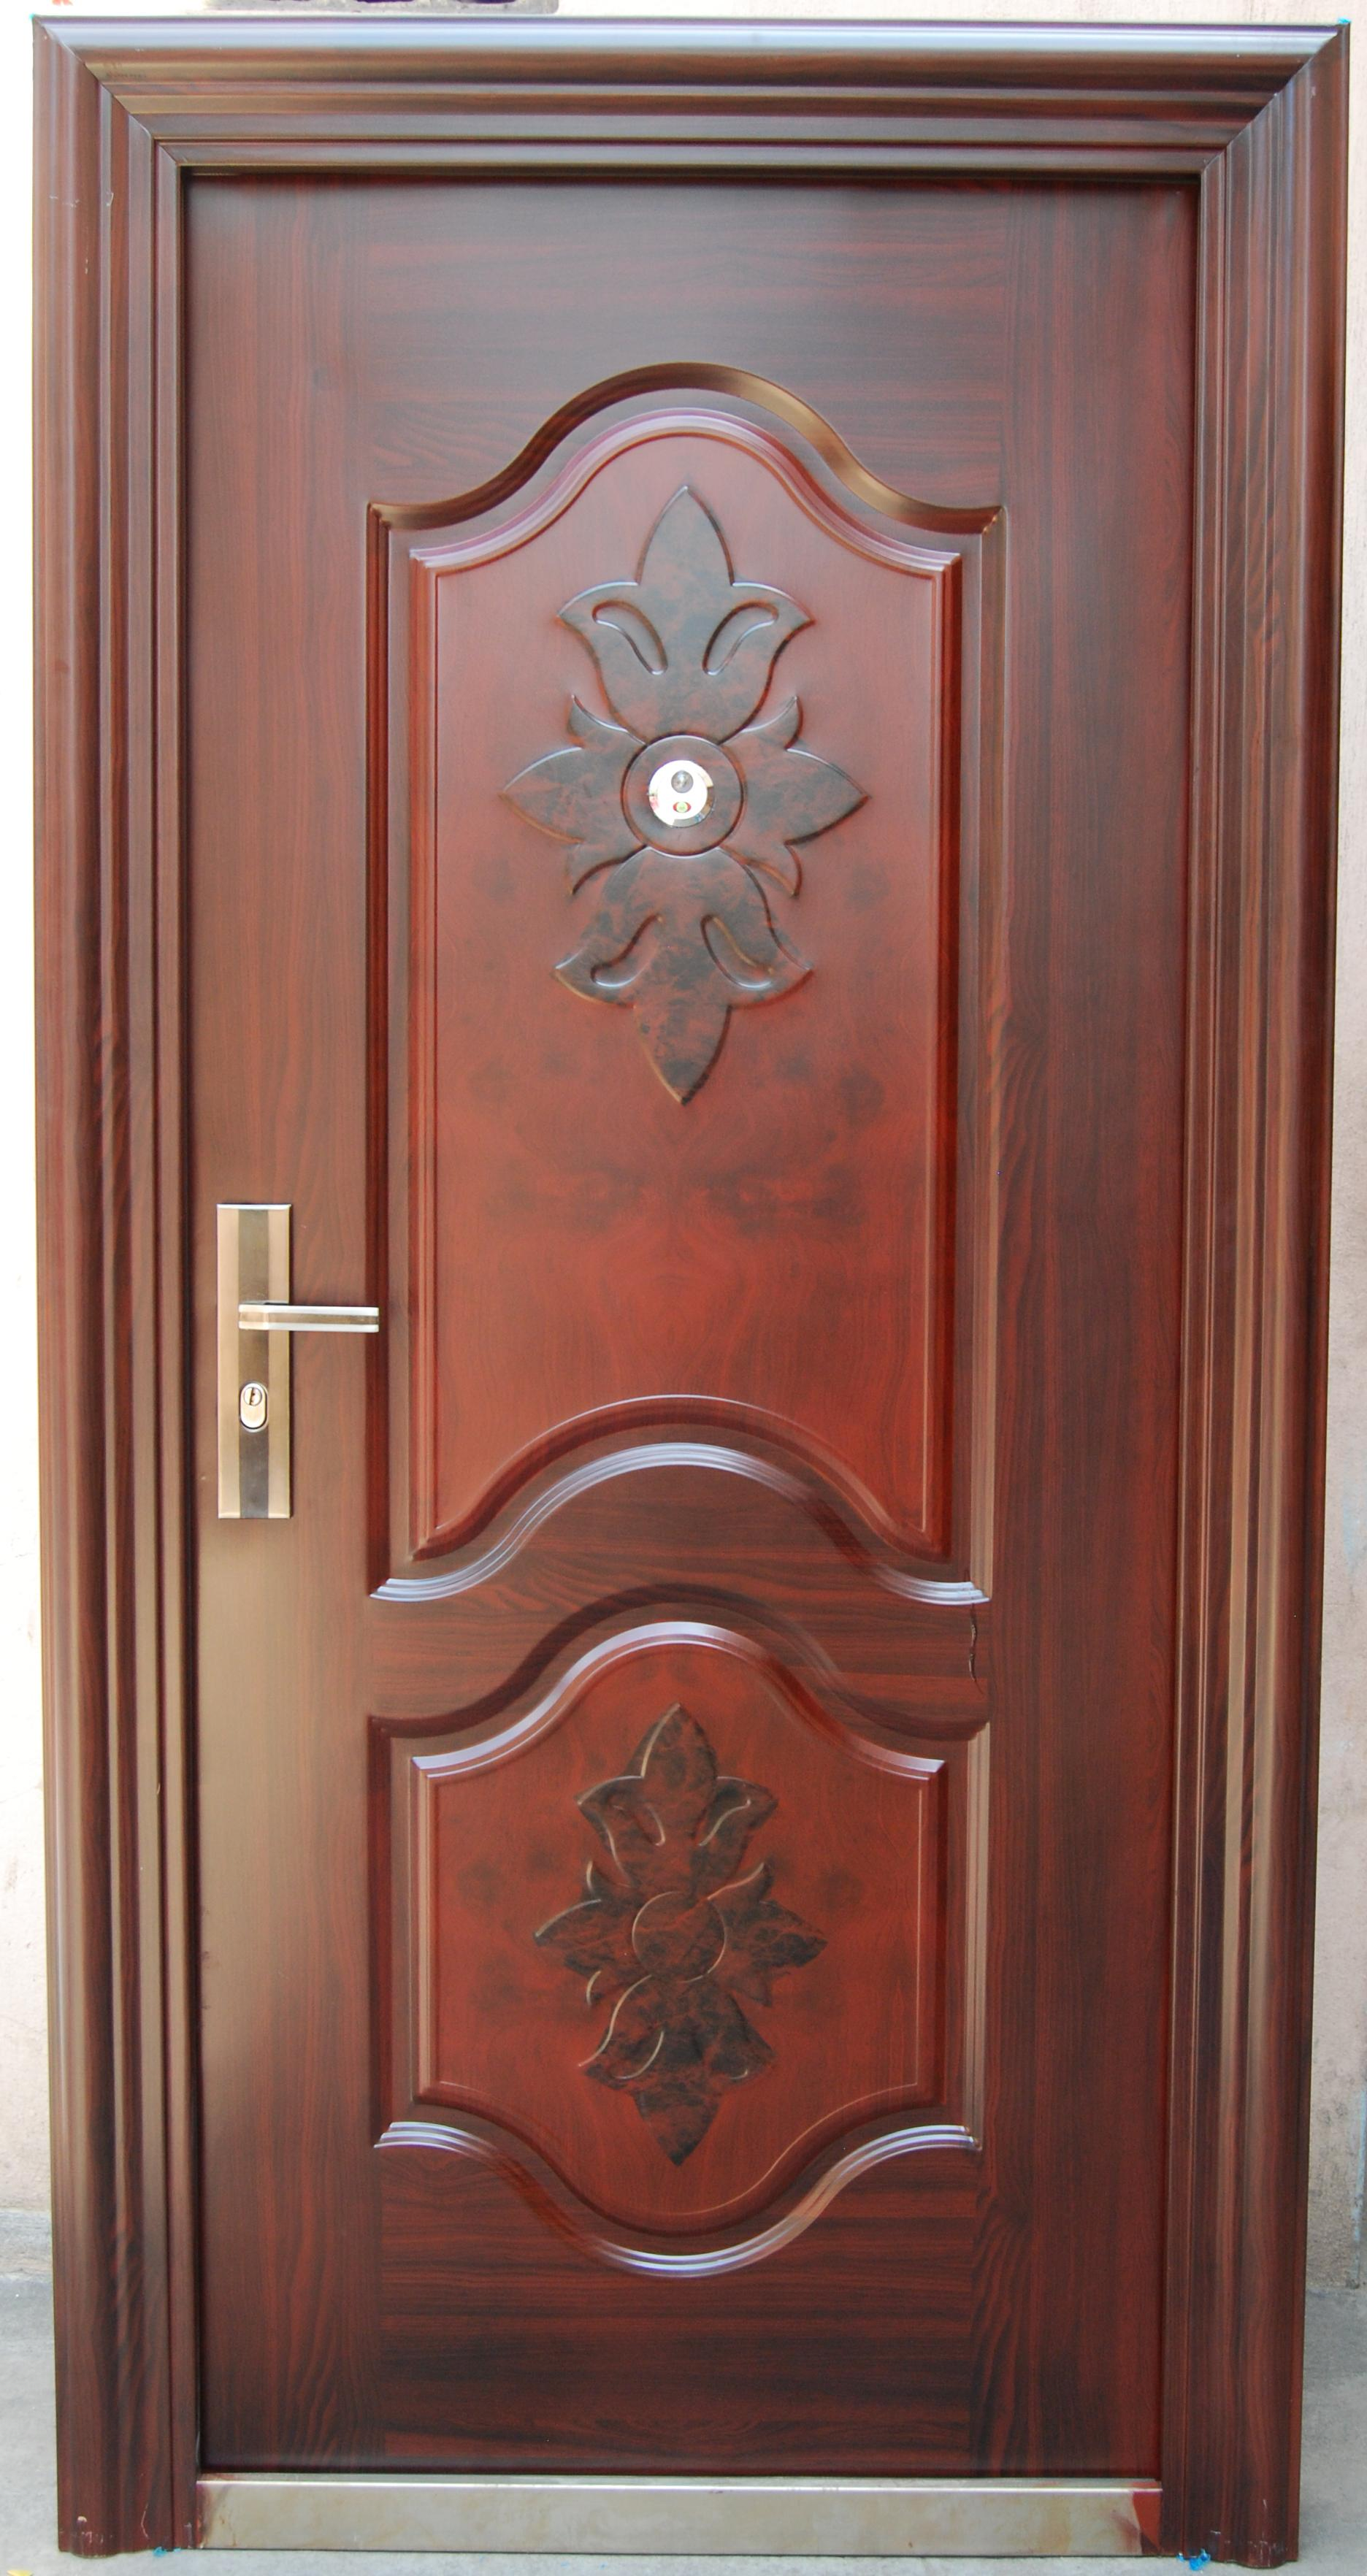 Steel security doors gharexpert for Entrance door designs for flats in india